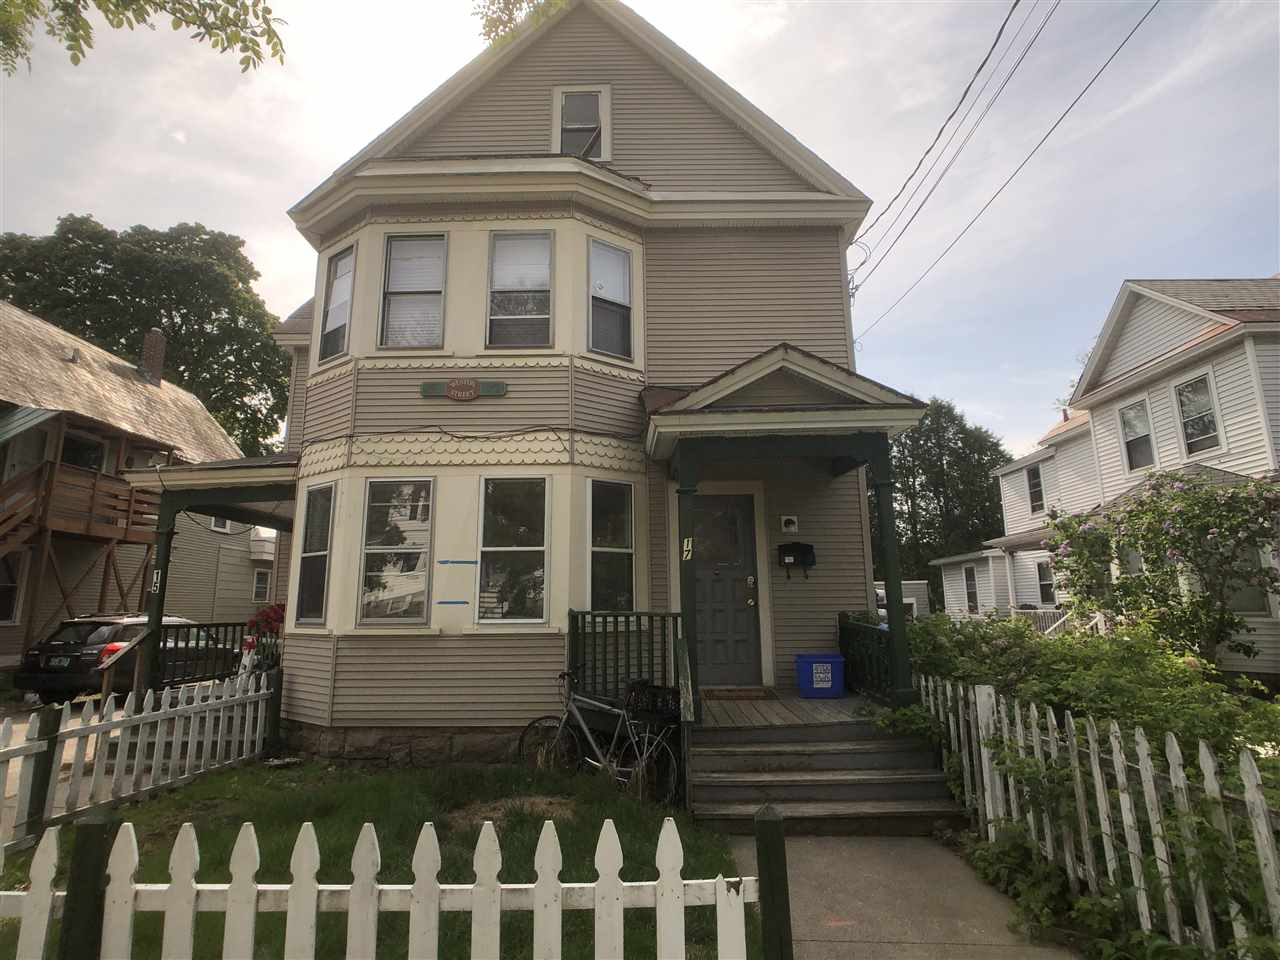 Located on a short one block street between Henry and Loomis Streets, this investment property offers excellent rental history, and solid numbers.  The large first floor unit is leased for the 19-20 school year for $750/bedroom, and includes a washer/dryer in the basement.  The second floor 1 bedroom unit was updated in 2017 to include new carpet in the bedroom, new laminate flooring in the kitchen and living room, new kitchen counter, and new washer/dryer.  Prime college rental location in the heart of downtown, with exceptional access to campuses, downtown, and UVM Medical Center.  Four off street parking spaces, and a large back yard makes it attractive to tenants.